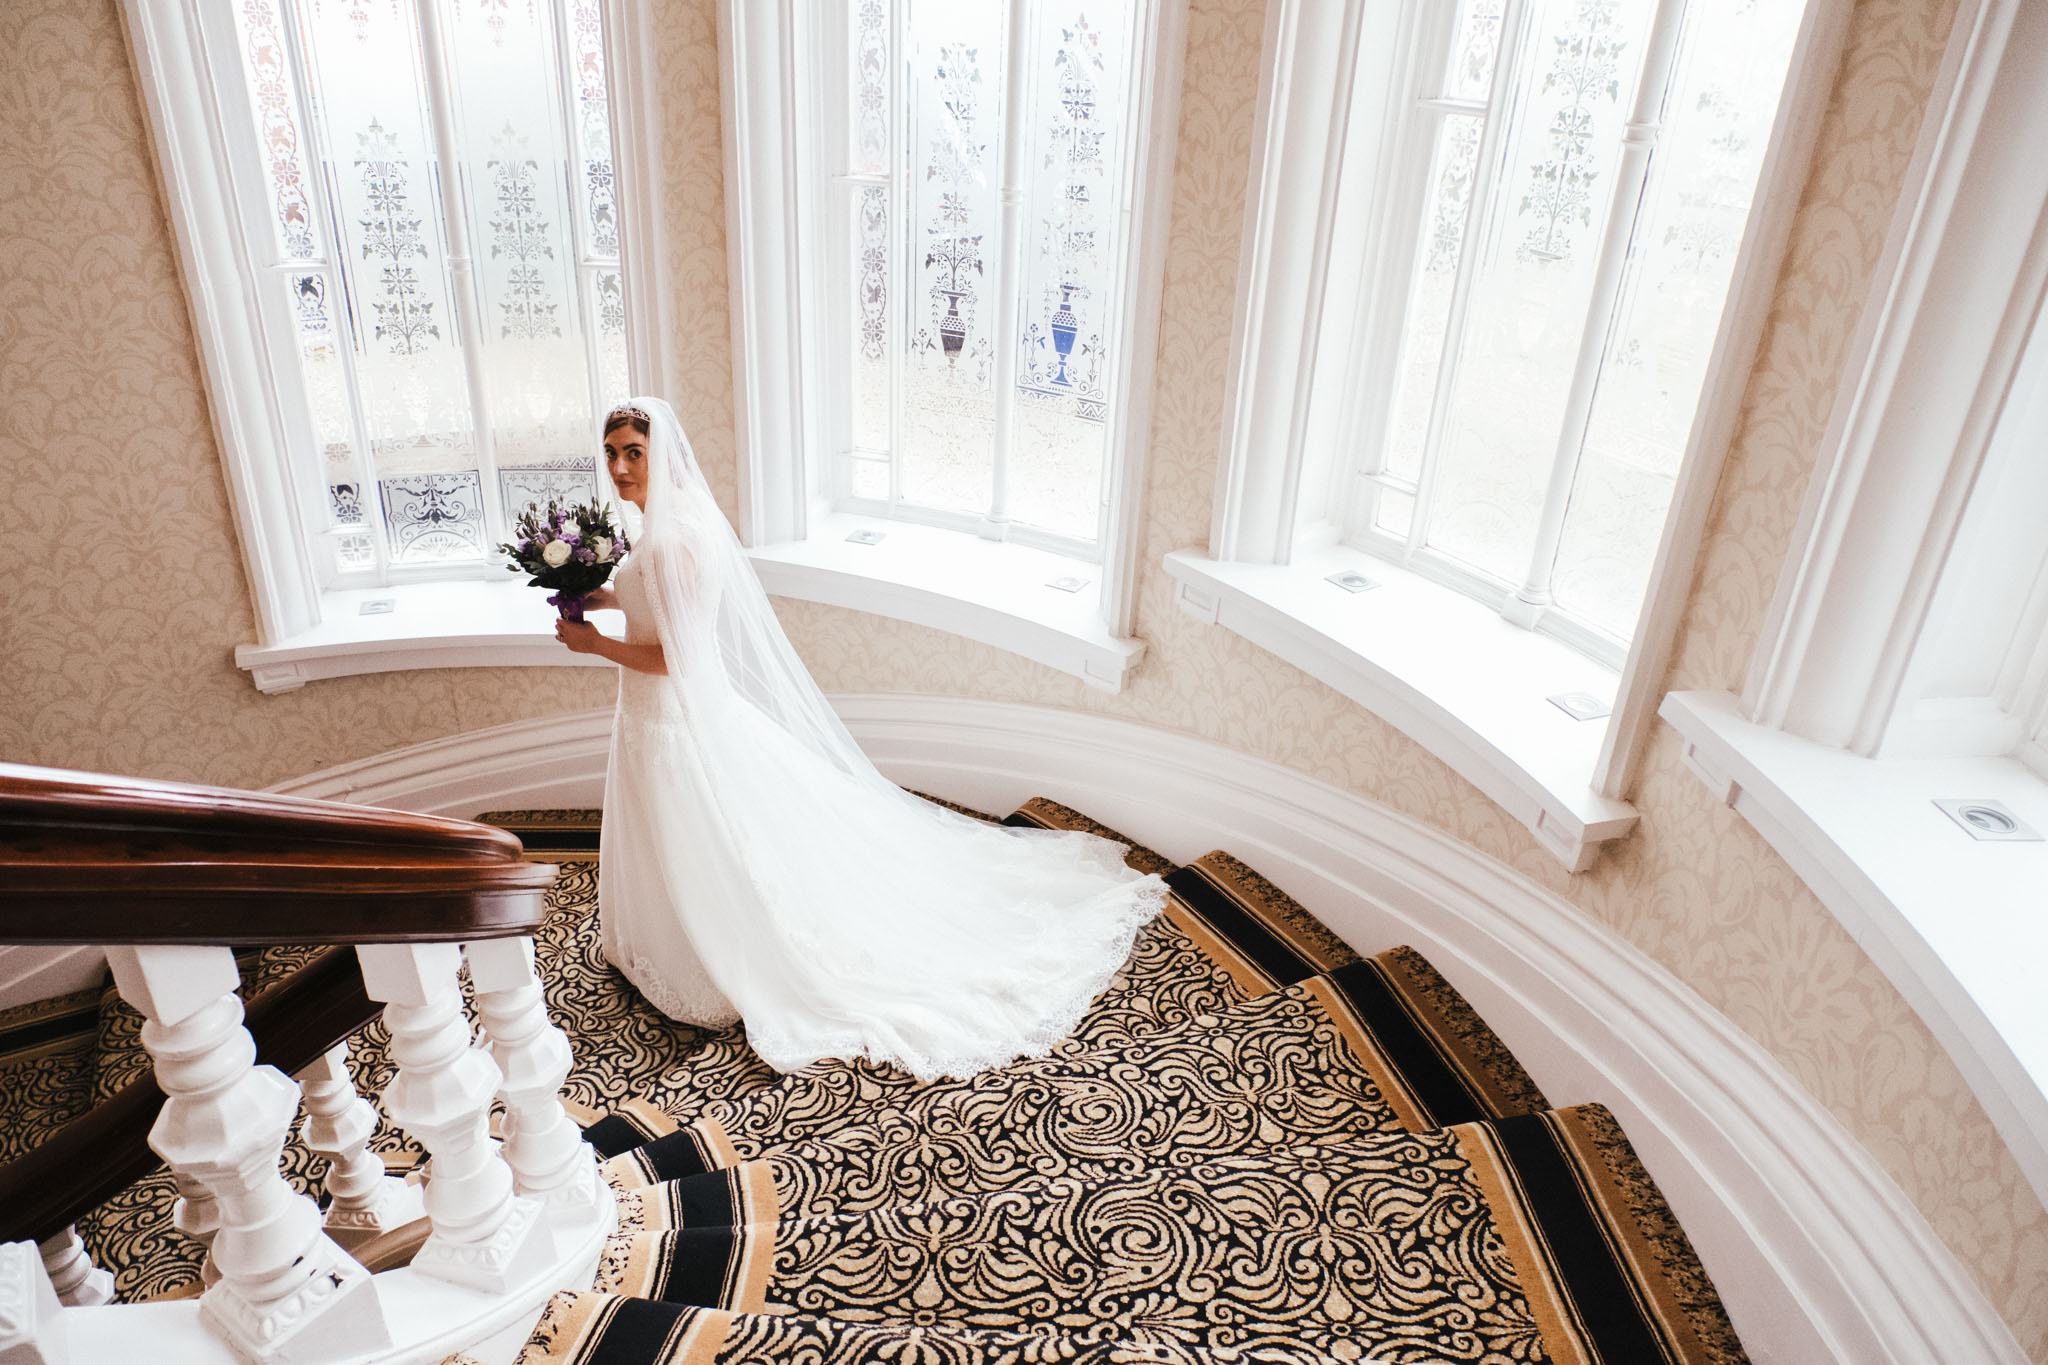 THE GRAND HOTEL, TYNE MOUTH WEDDING VENUE